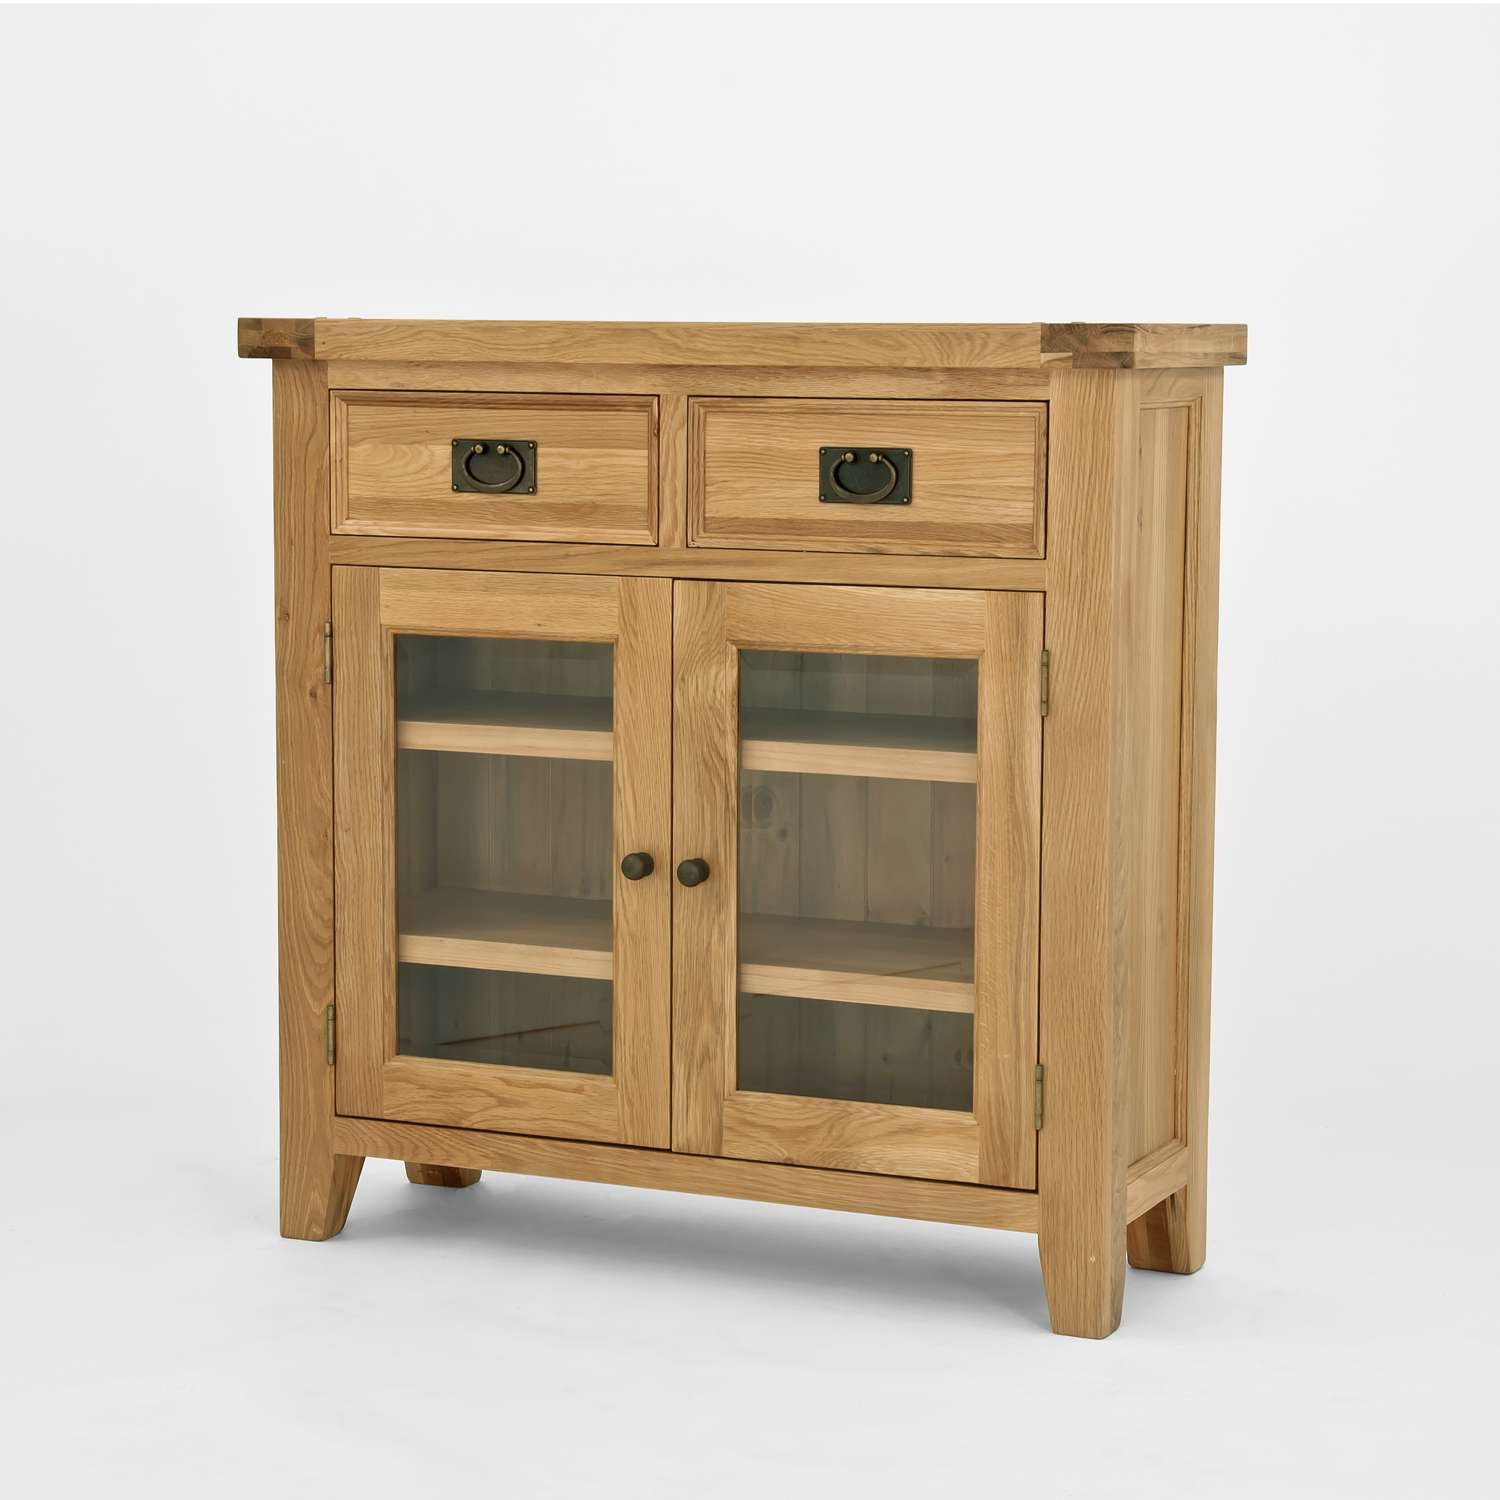 Chiltern Oak Small Sideboard/bookcase With Glass Doors Throughout Sideboards With Drawers (View 6 of 20)